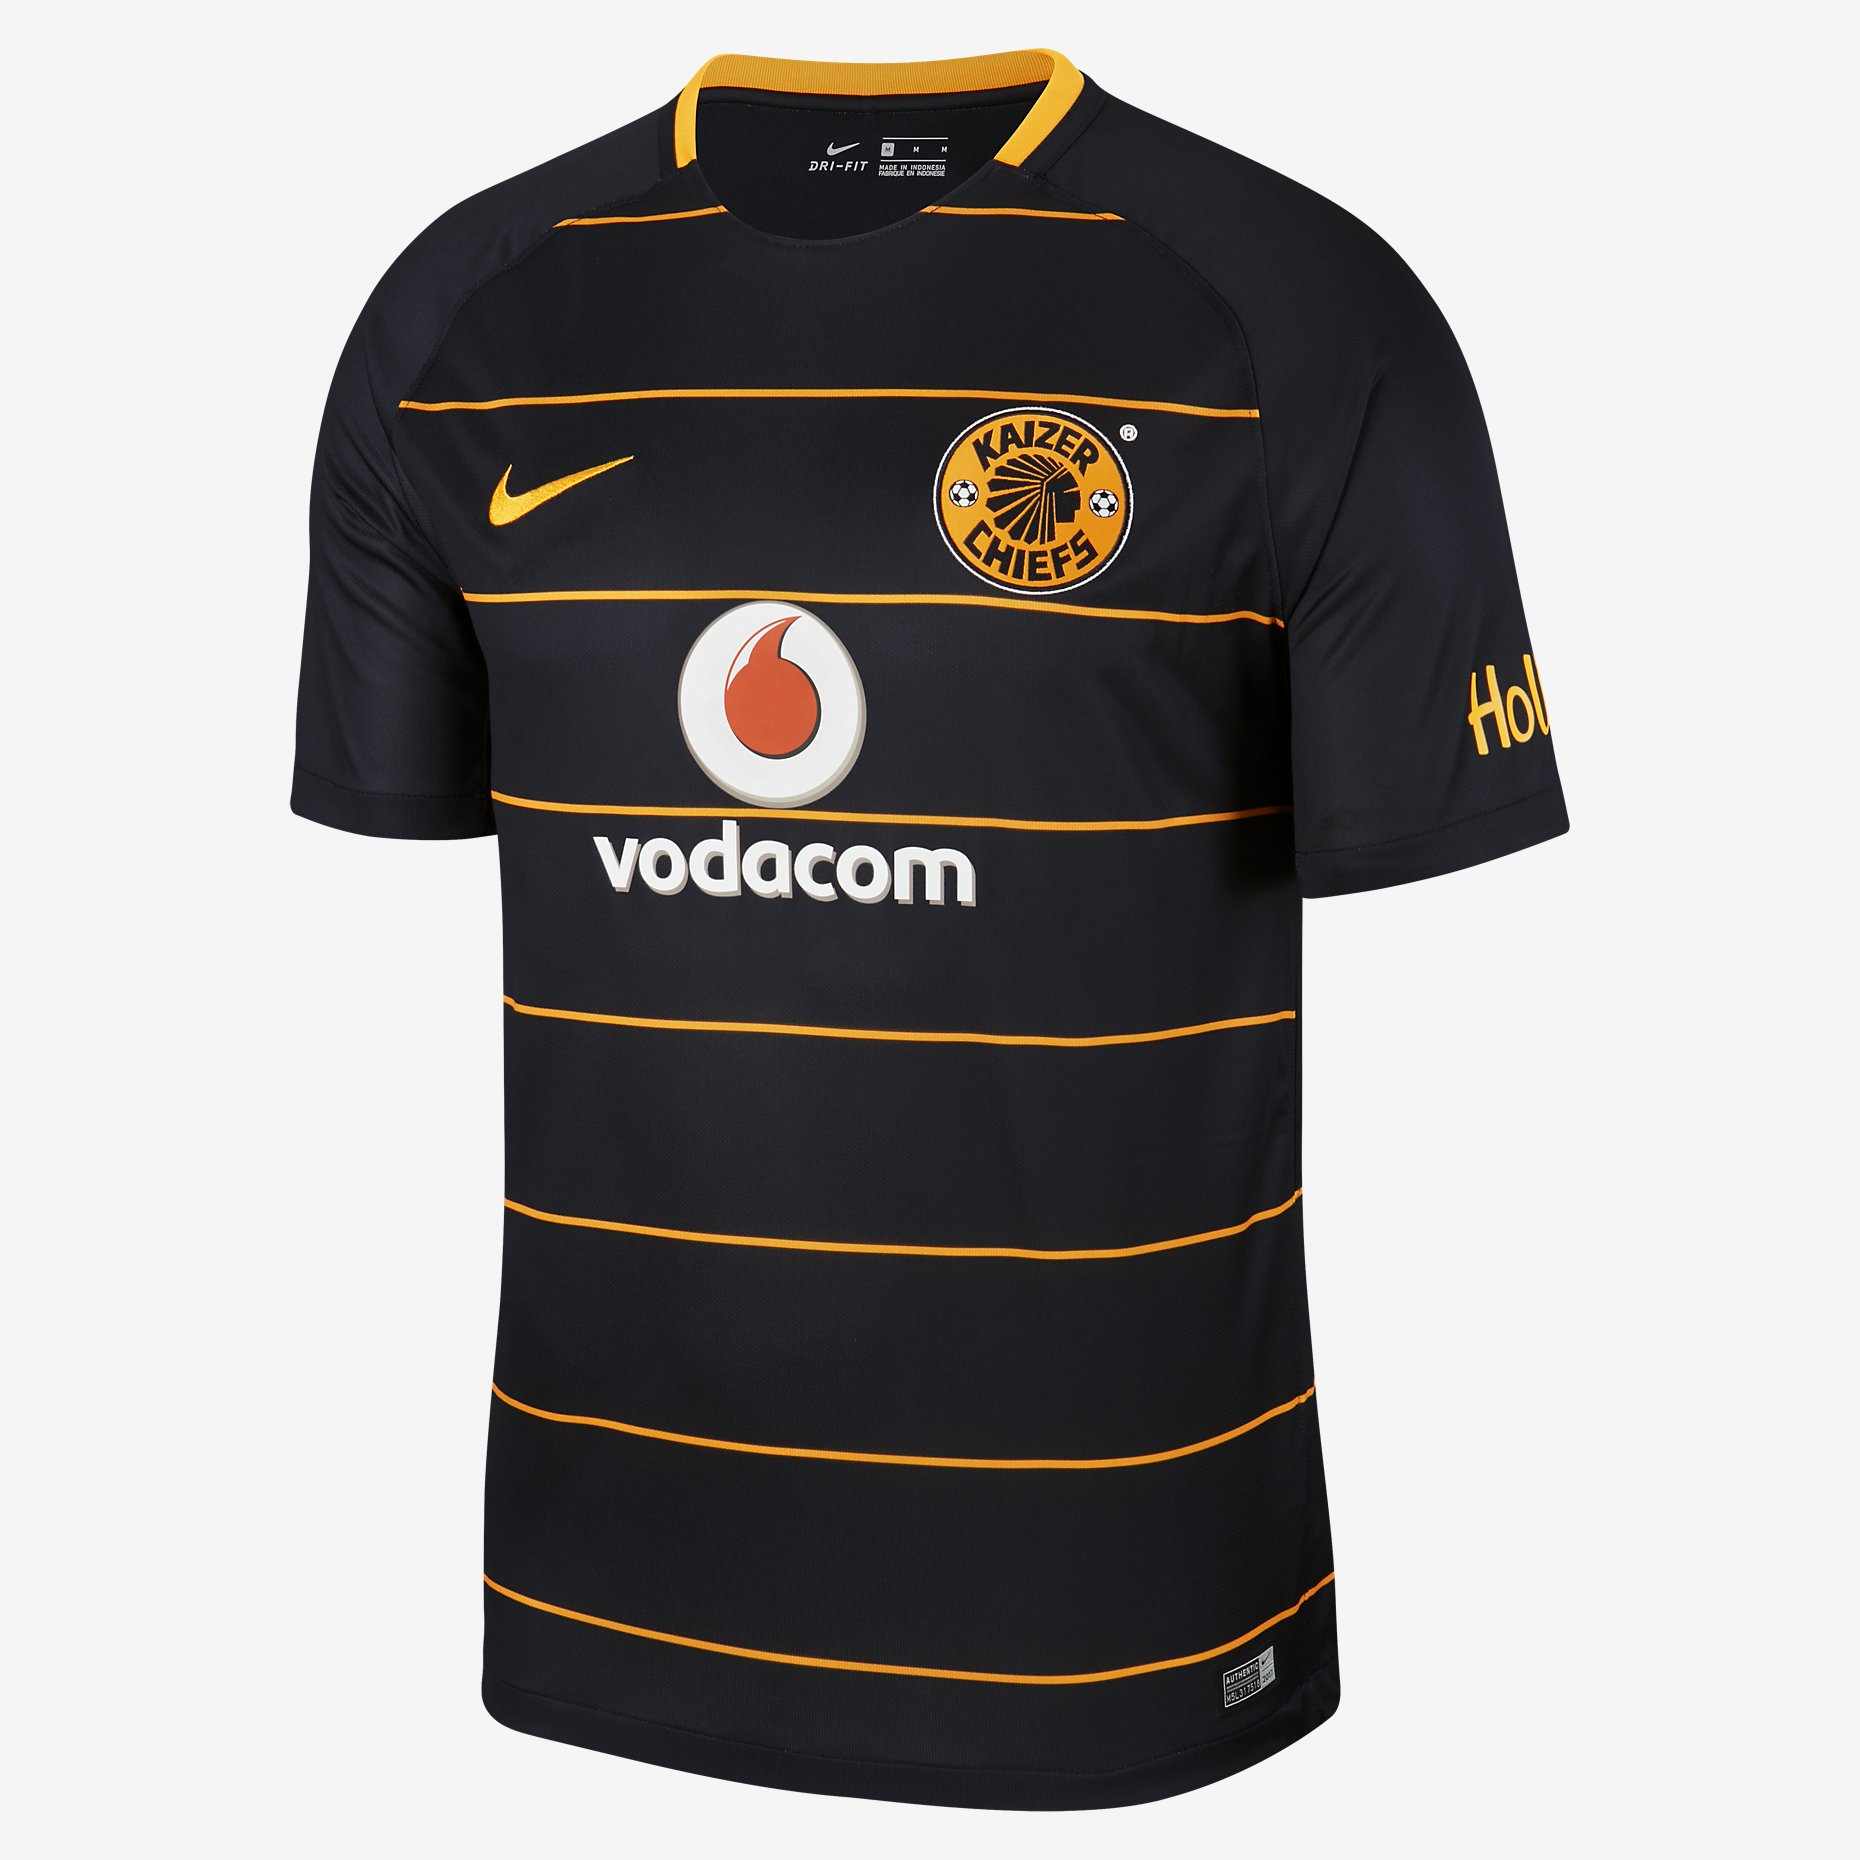 1419968a ... Kaizer Chiefs 17/18 Nike Home Kit · Click to enlarge image  kaizer_chiefs_17_18_nike_away_kit_1.jpg ...